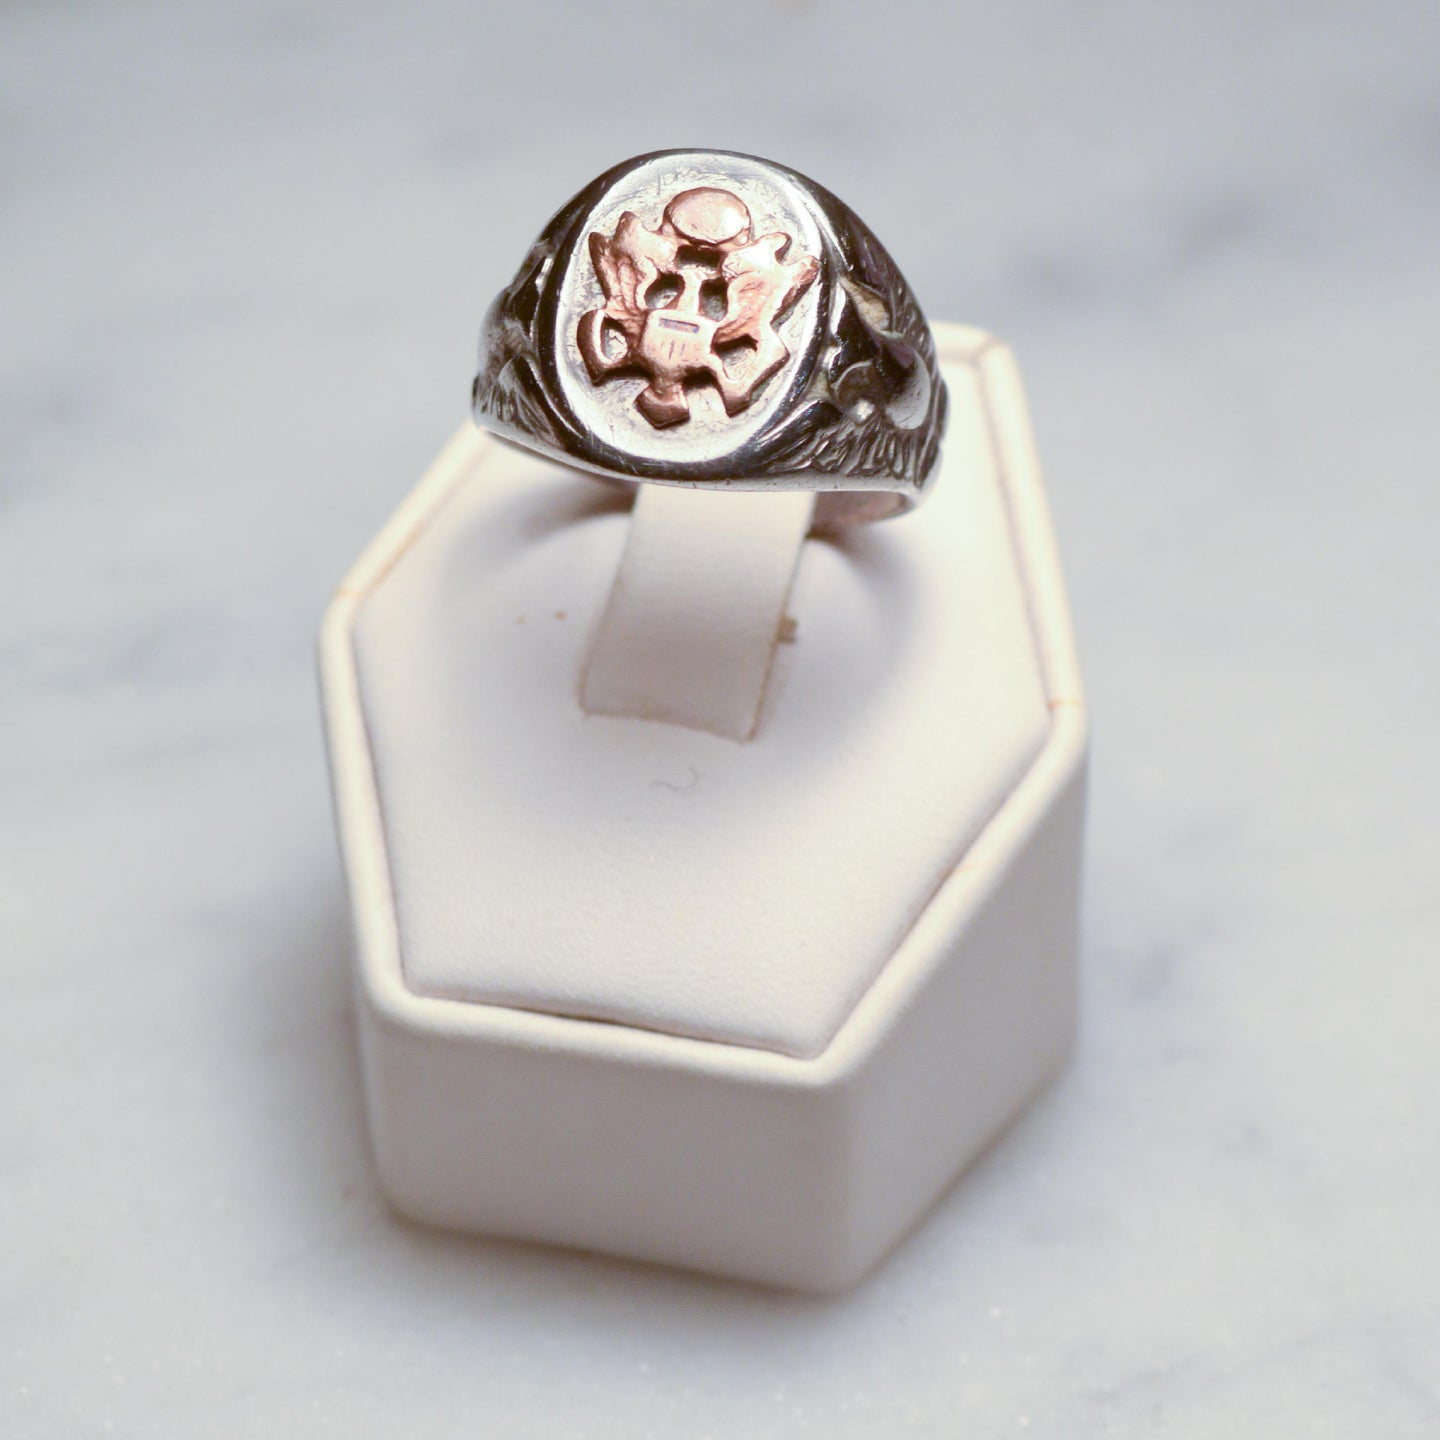 US Army Sterling Silver Signet Ring